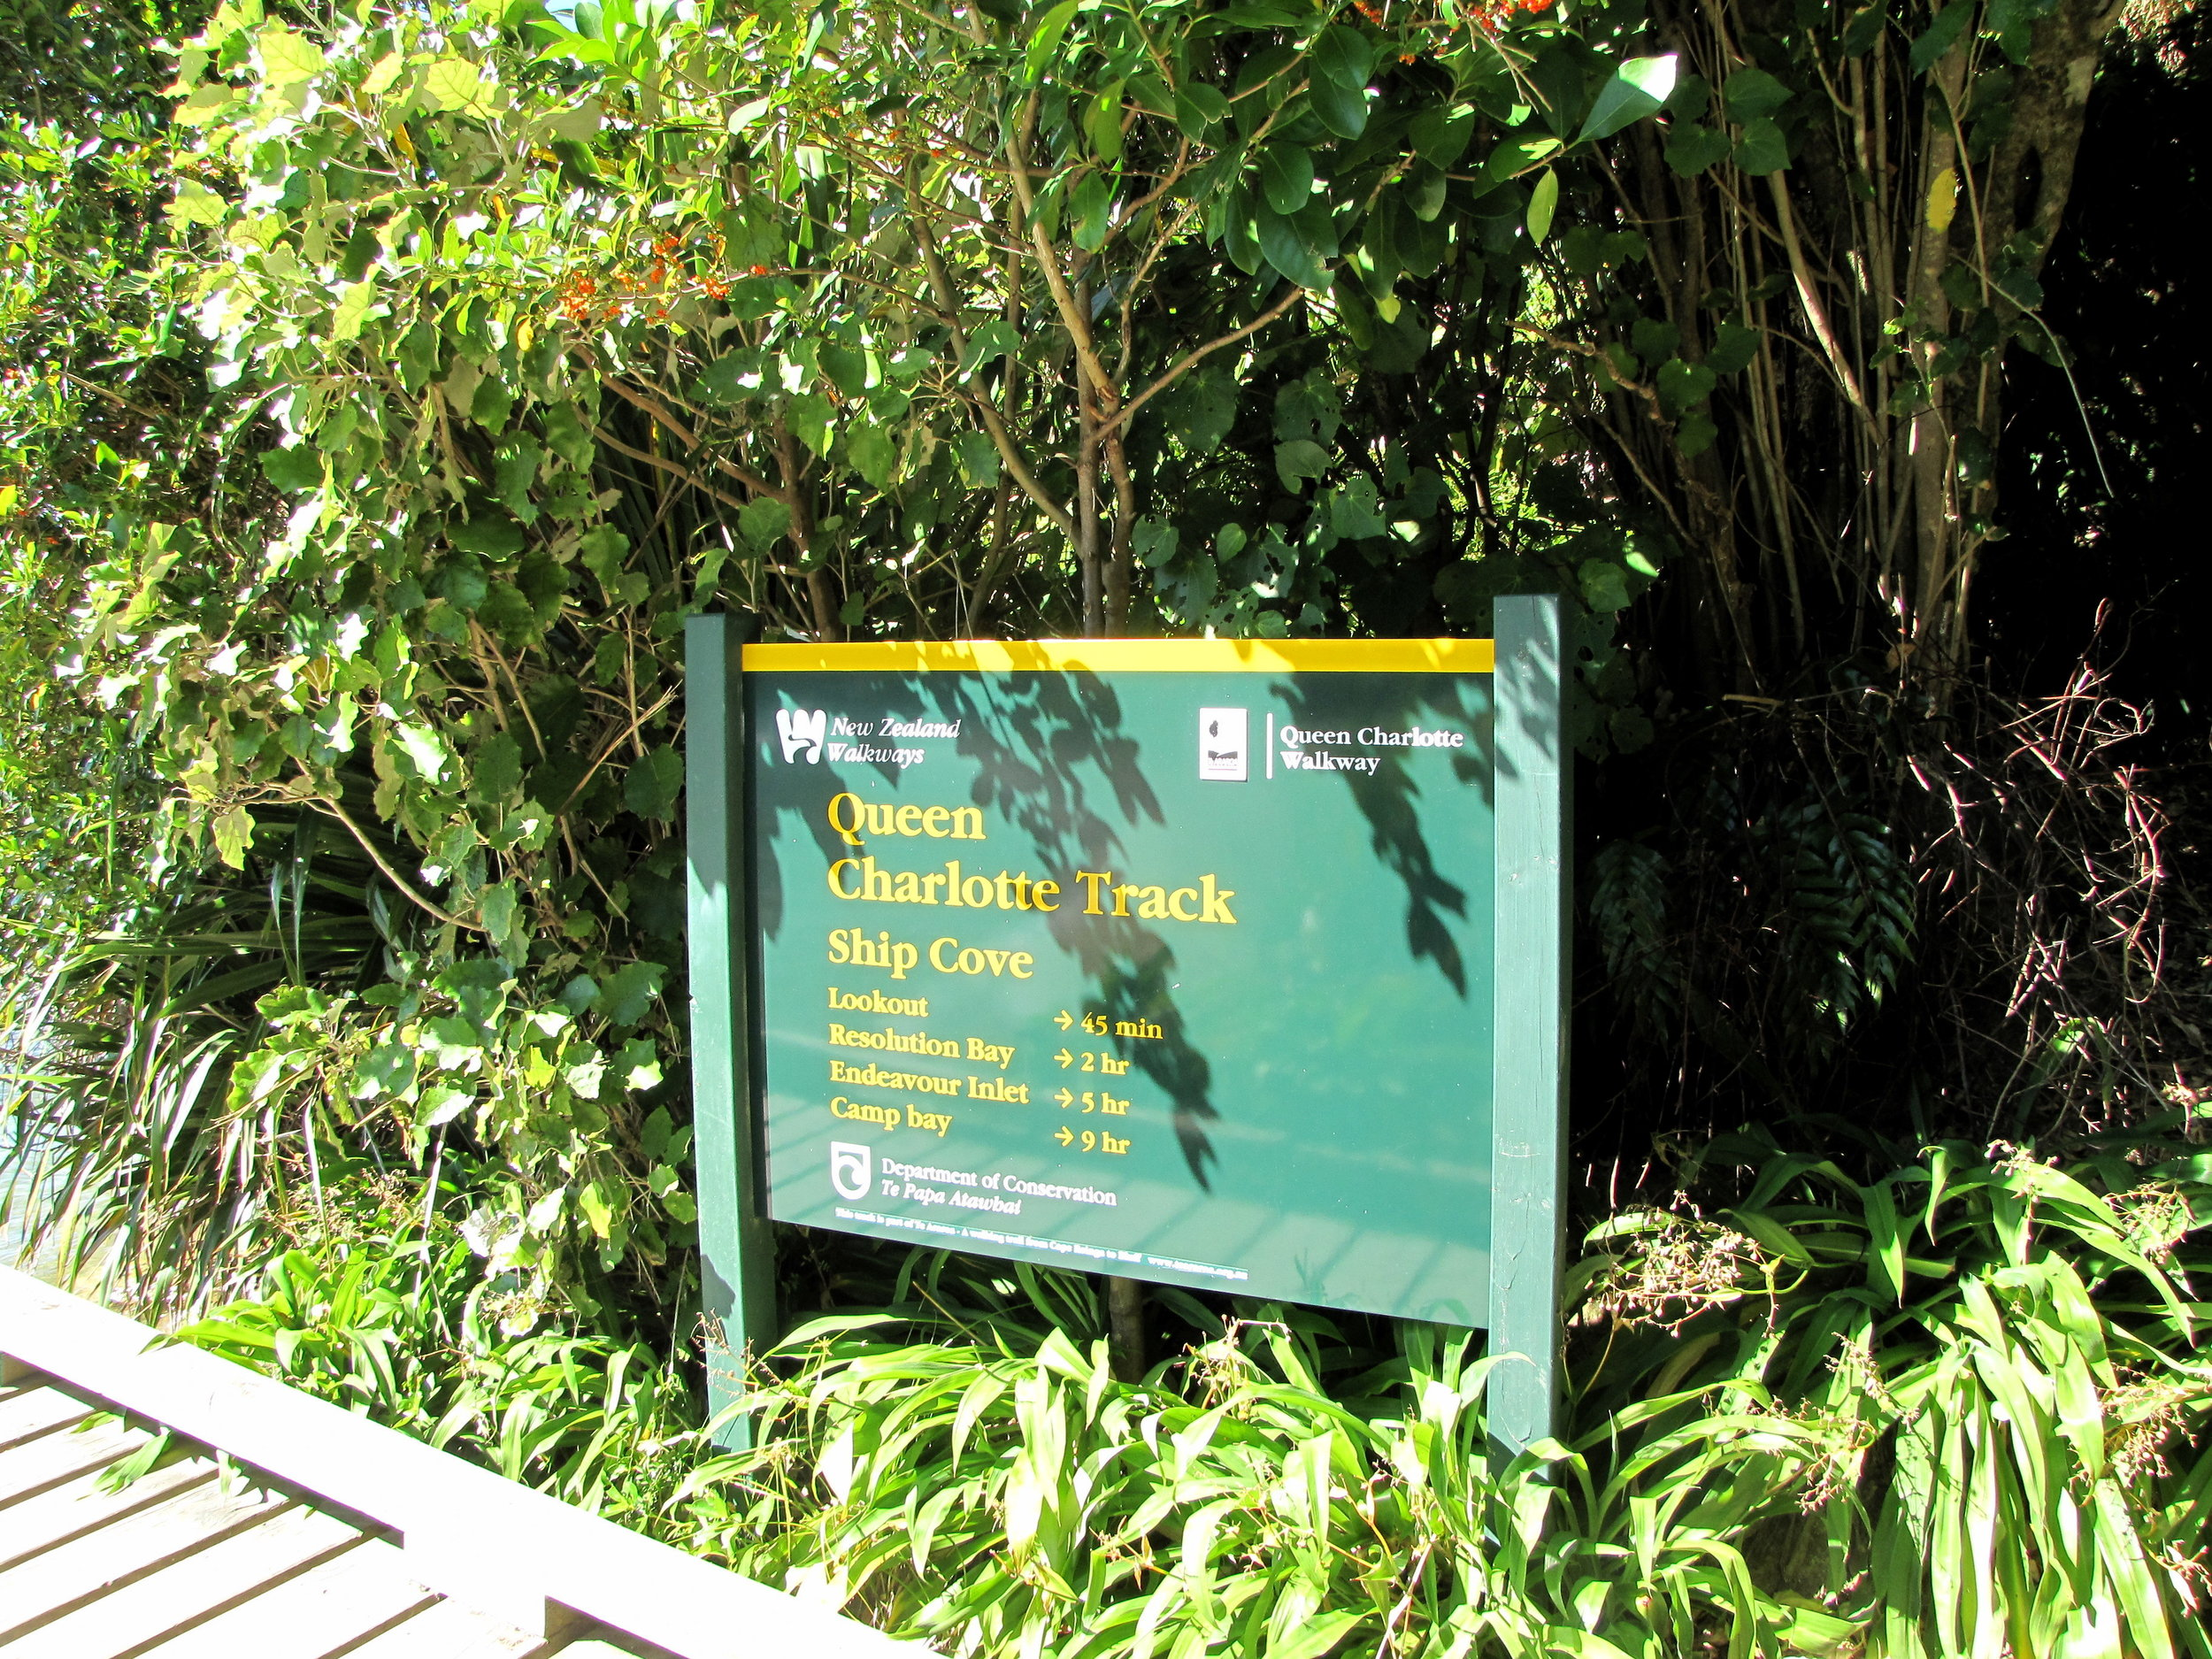 The Queen Charlotte Track in New Zealand